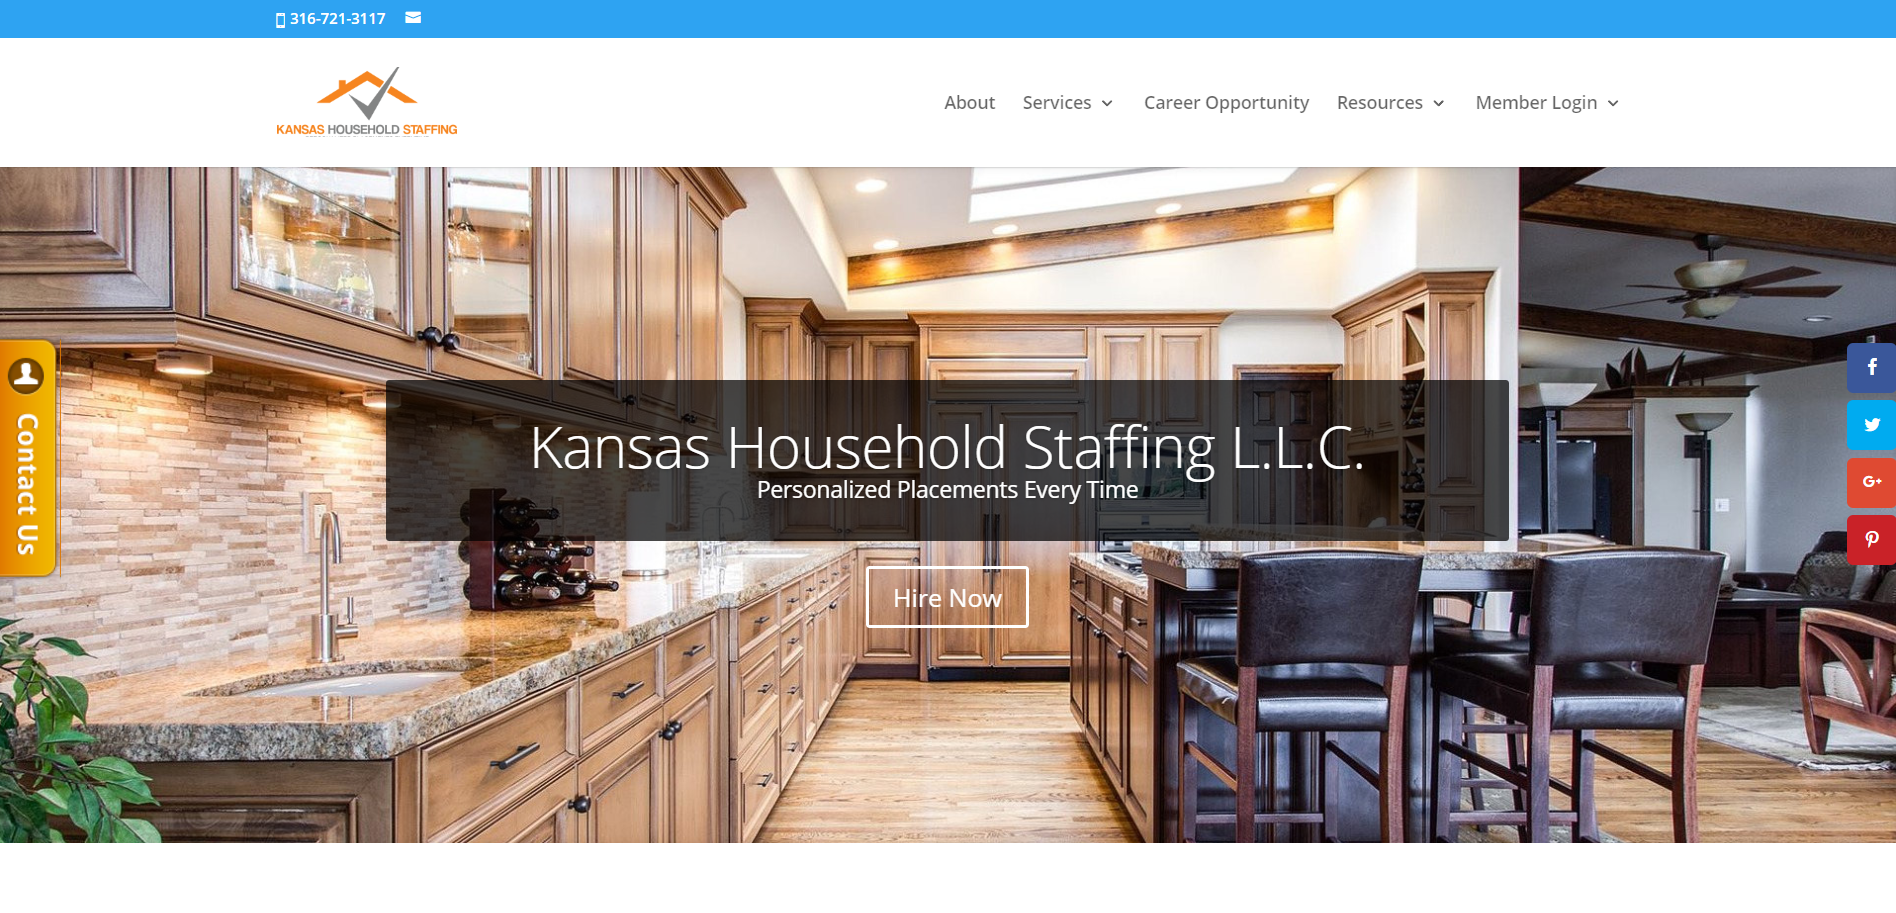 Kansas Household Staffing website